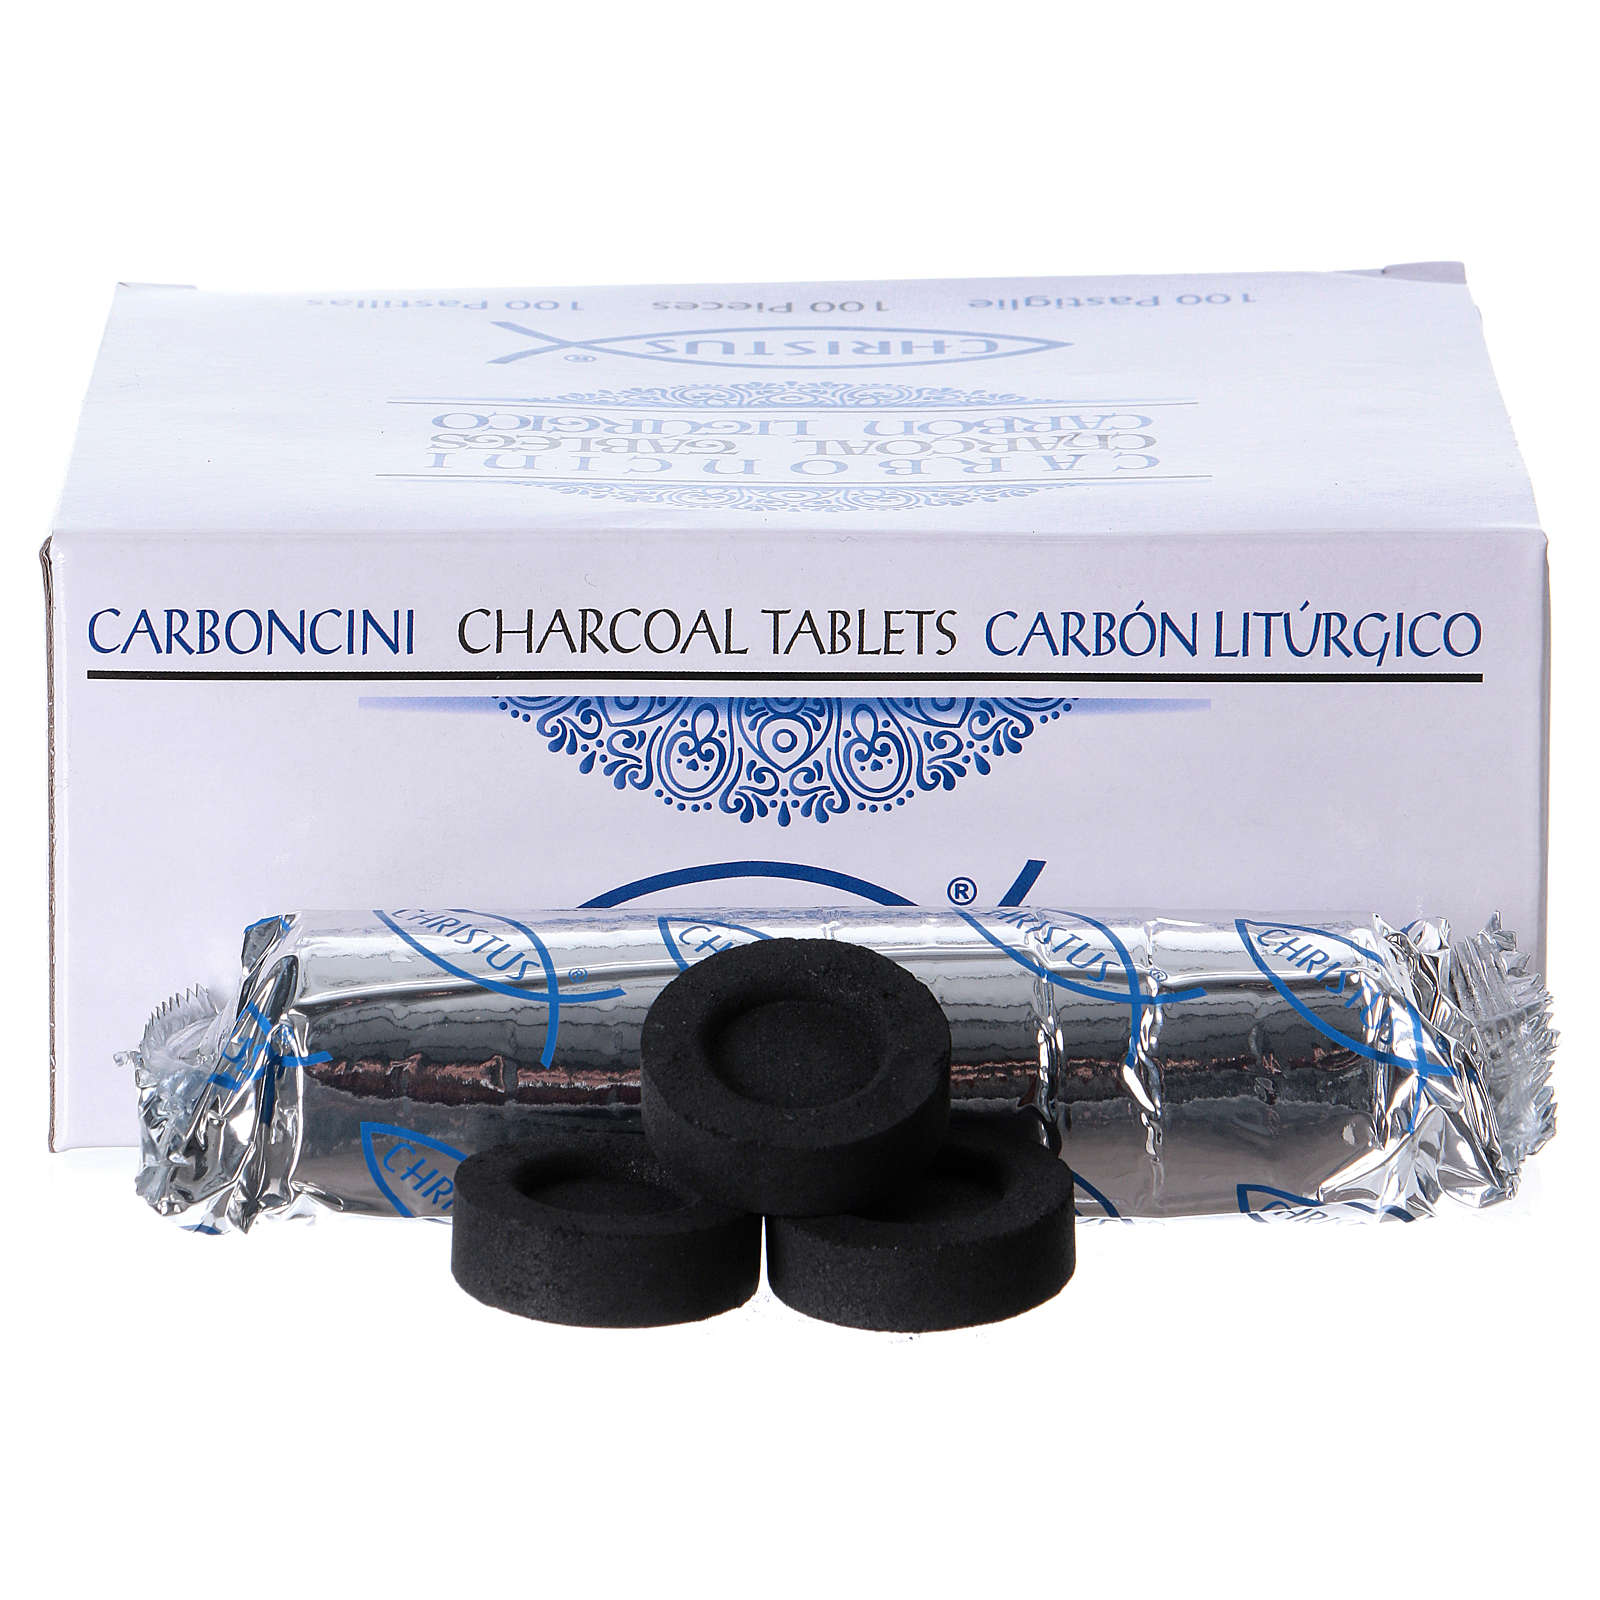 Incense charcoals 4 cm 100 tablets 3